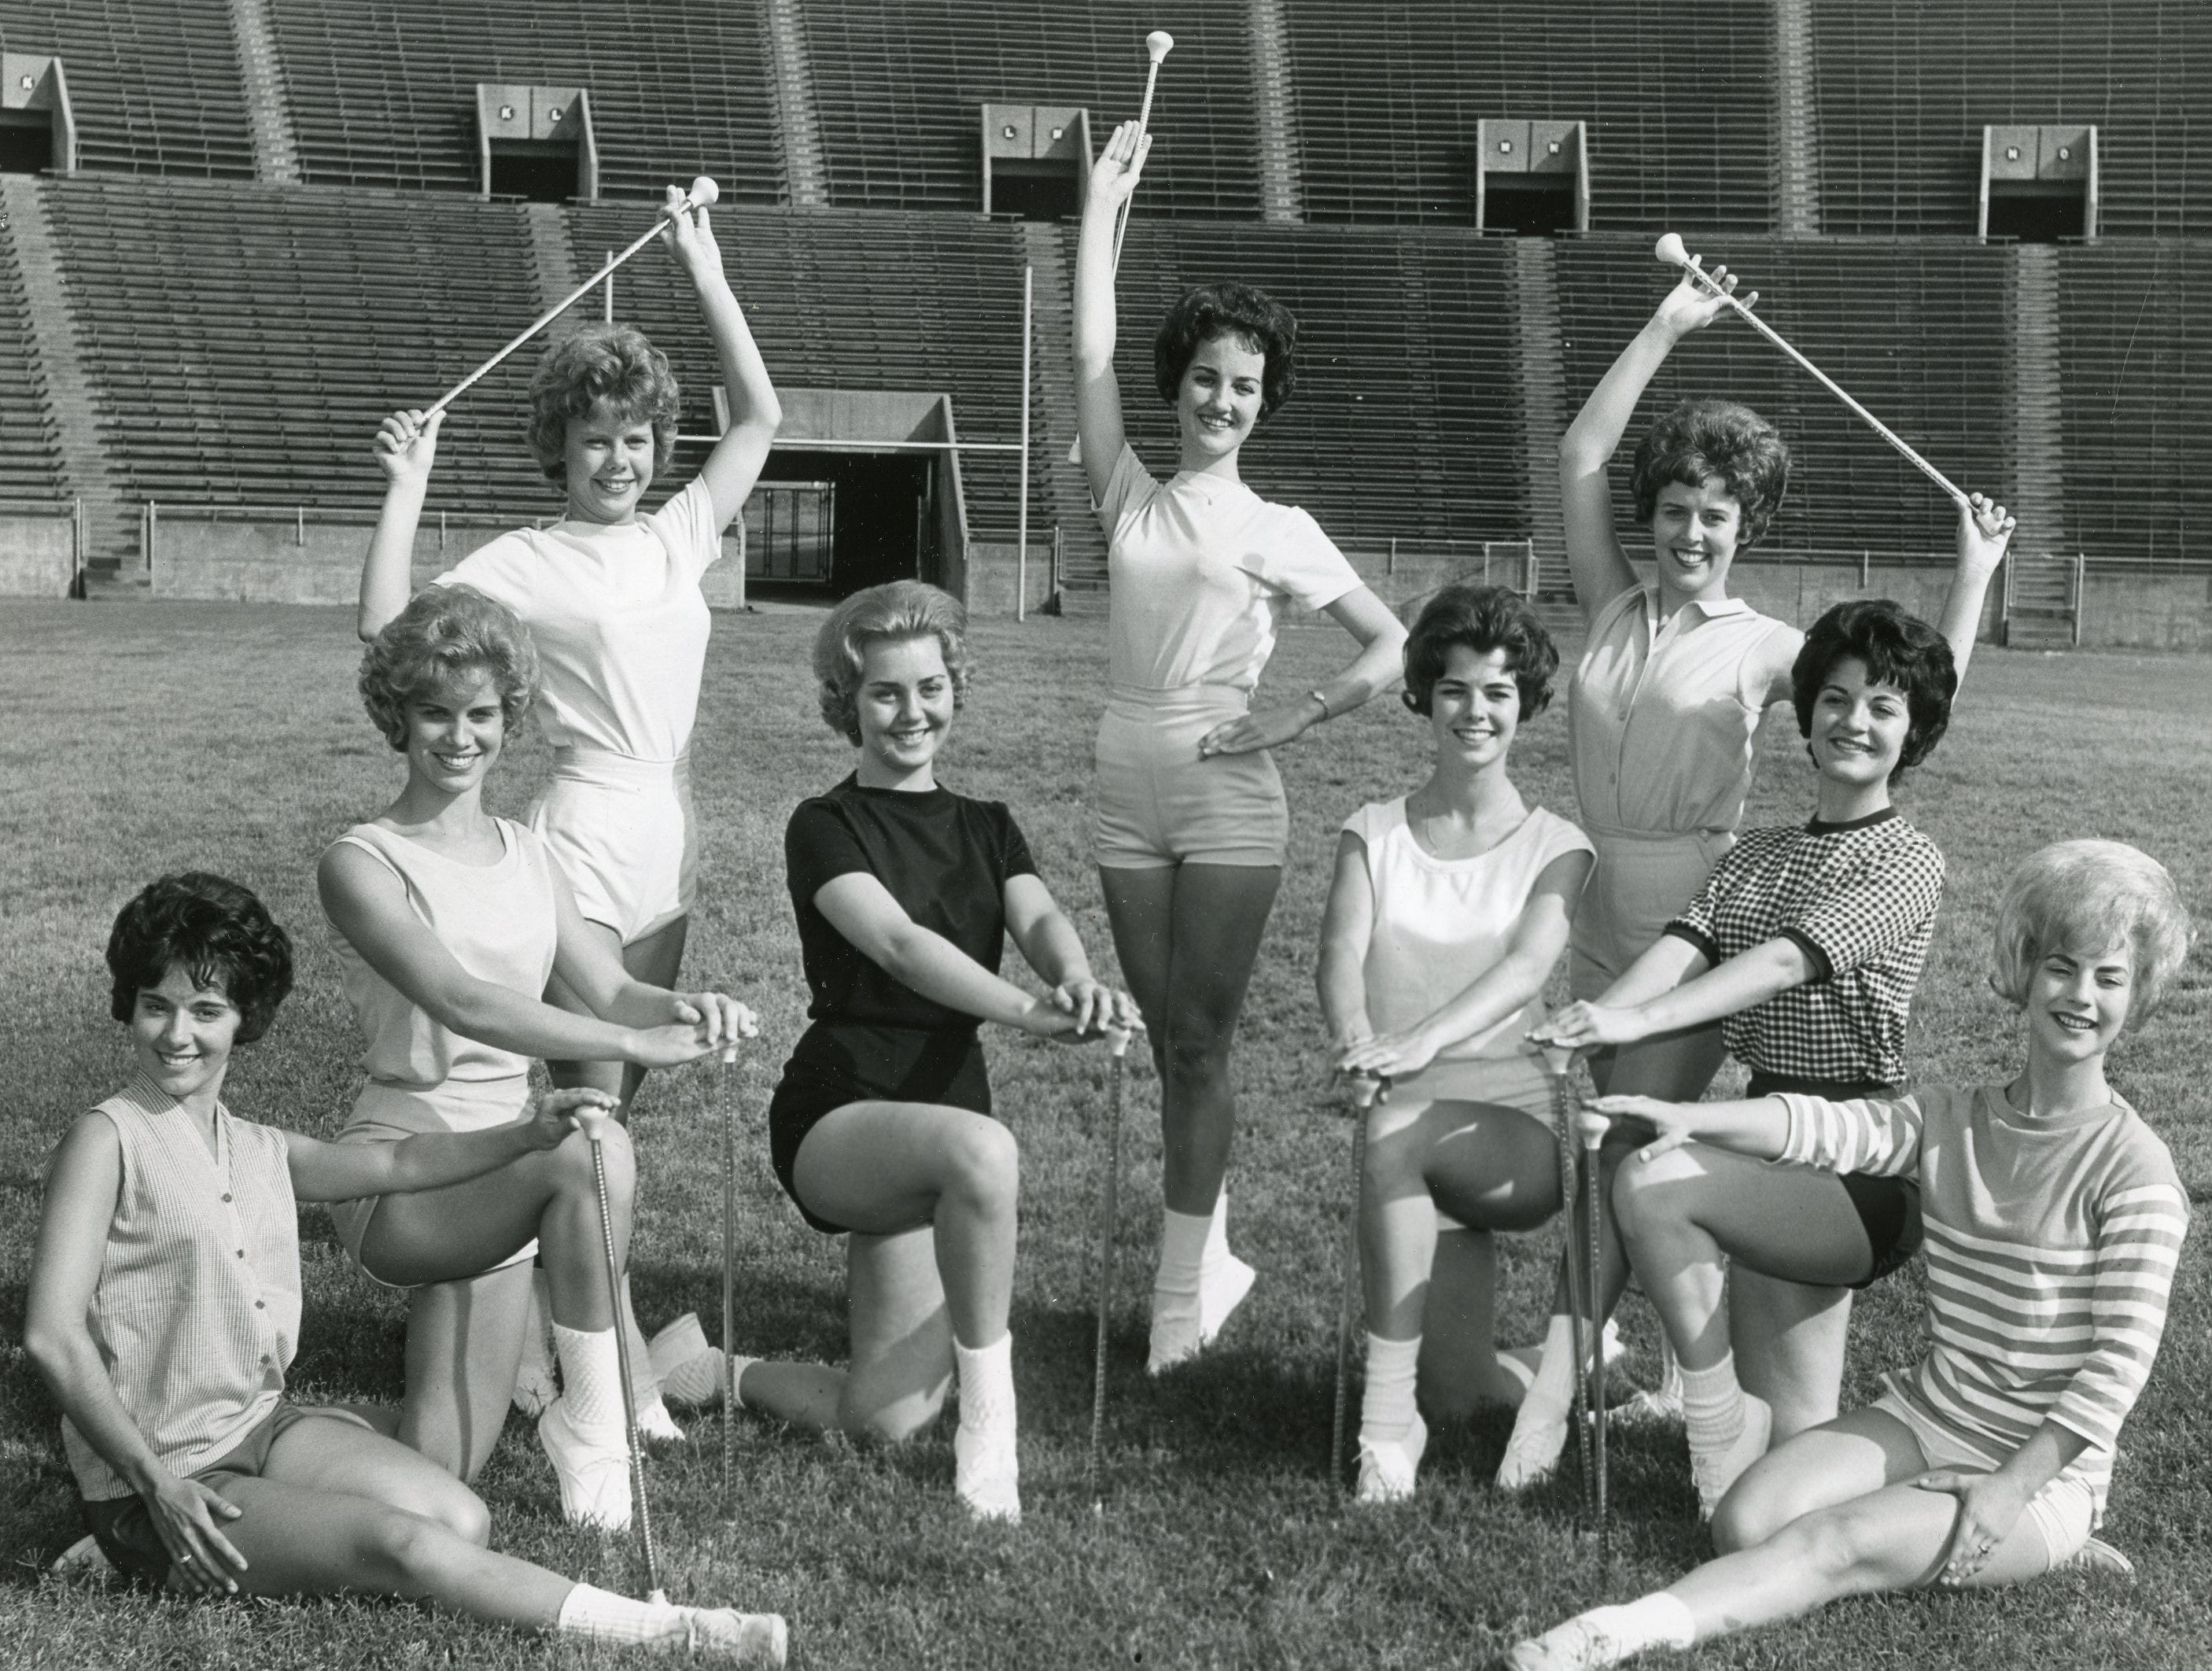 UT majorettes, May, 1962 included: (left to right) Marcia Austin, Judy Barton, Mary Nicholon, Judy Bailey, Claudette Riley, Bette Carlson, Marlene Bagwell, Betty Sue Little and DeAnna Smith.